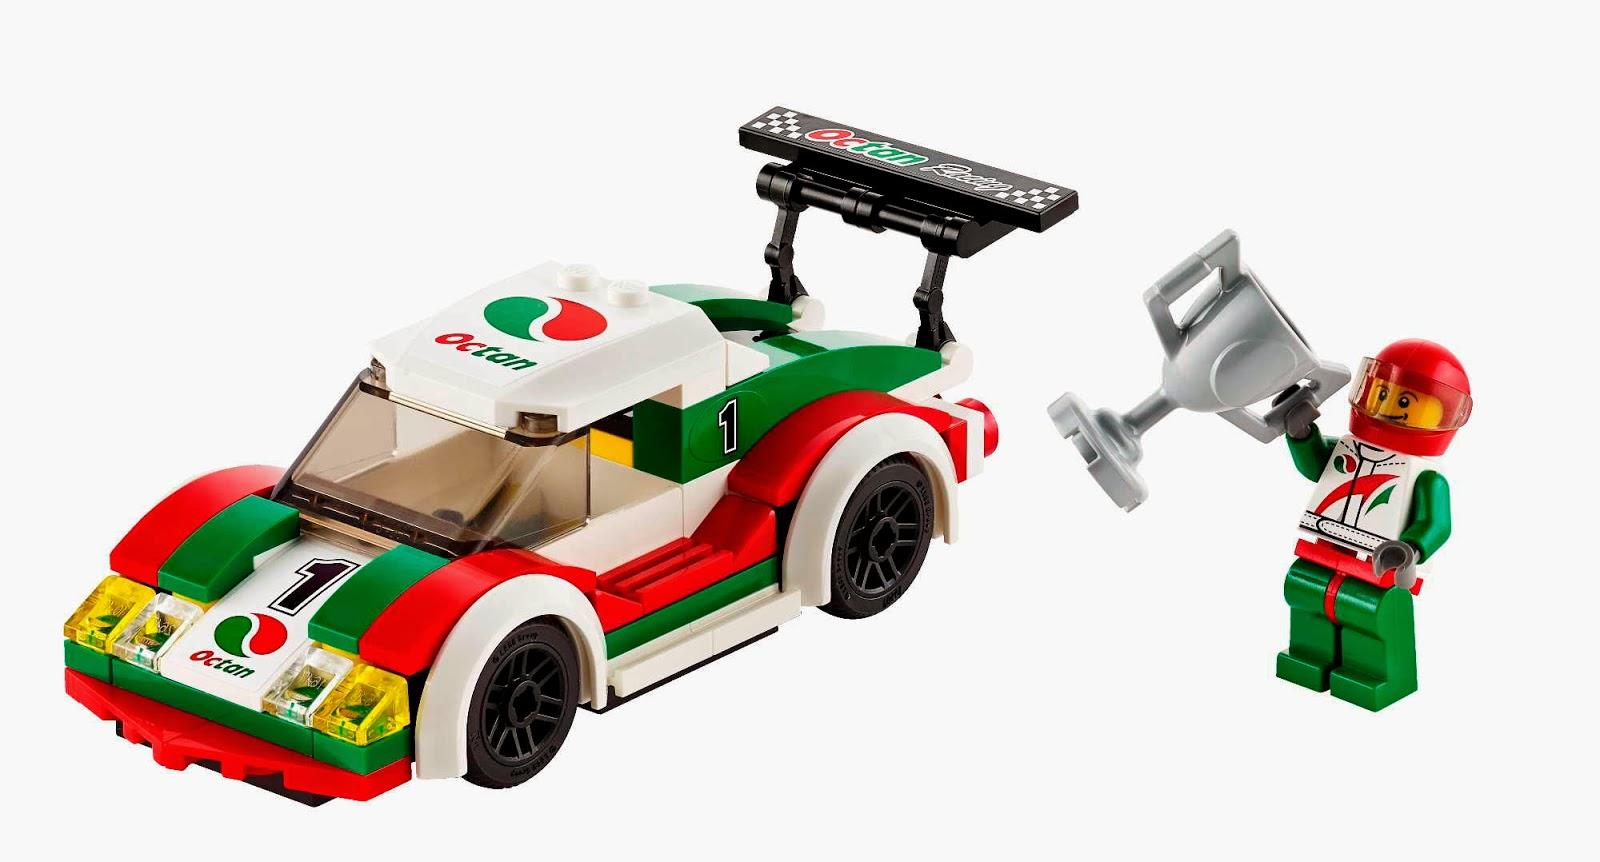 LEGO gosSIP: 111113 LEGO 60053 Race Car box art and picture